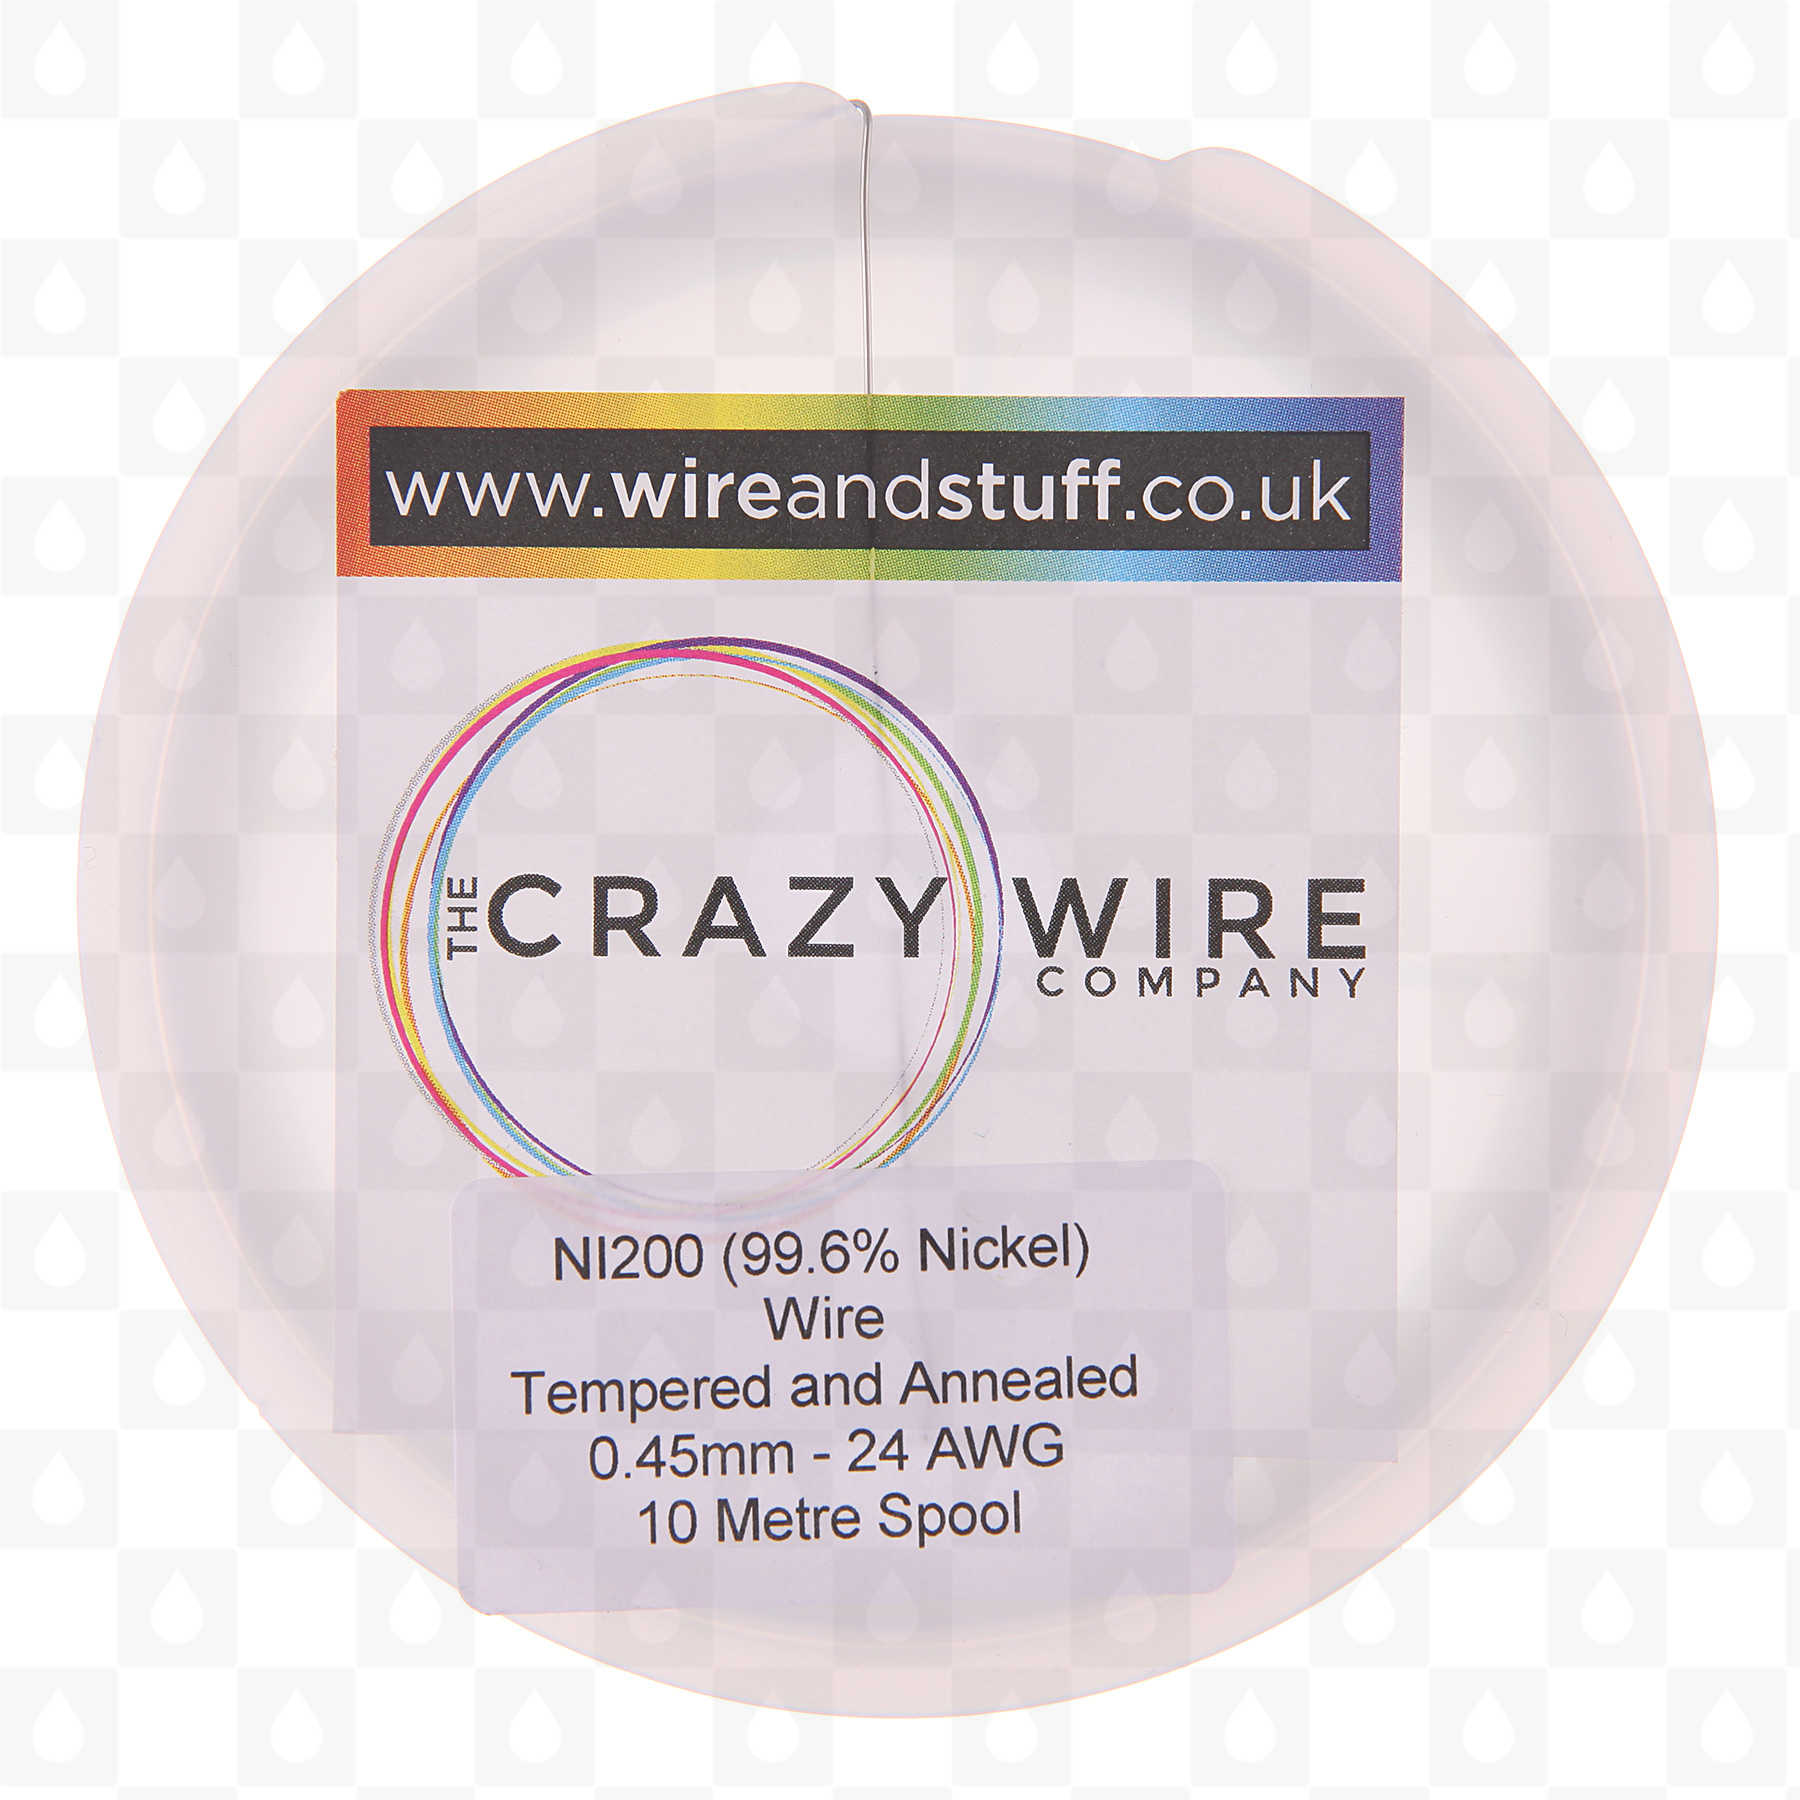 Ni200 heat resistance wire 10 meter spools gauge options uk ni200 heat resistance wire 10 meter spools gauge options uk vape shop redjuice greentooth Image collections